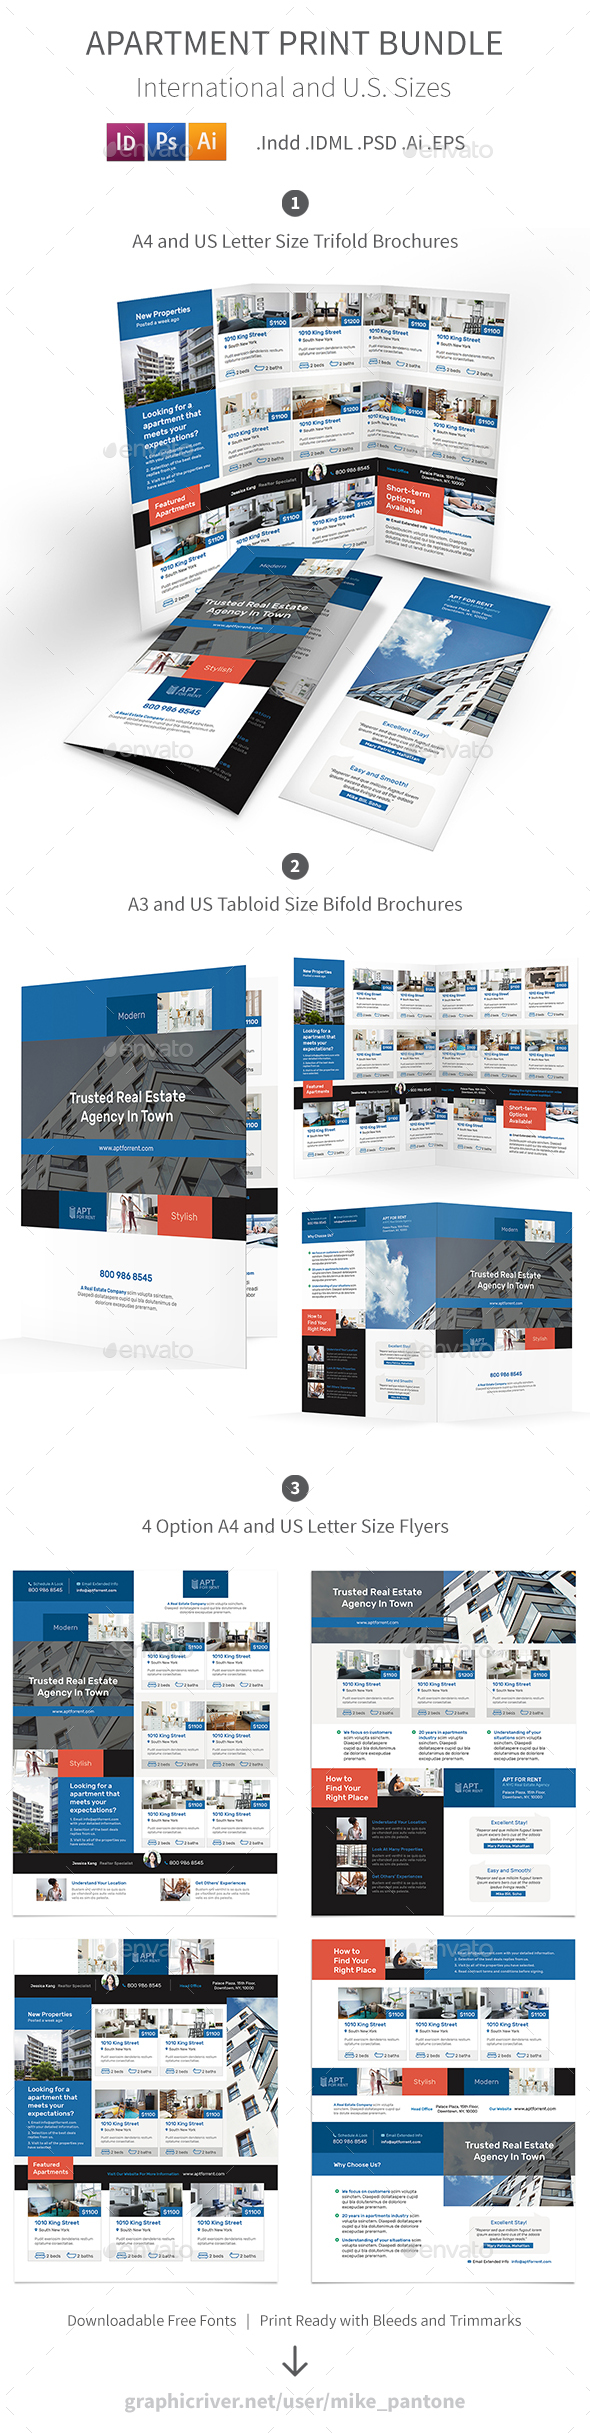 Apartment For Rent Print Bundle 3 - Informational Brochures